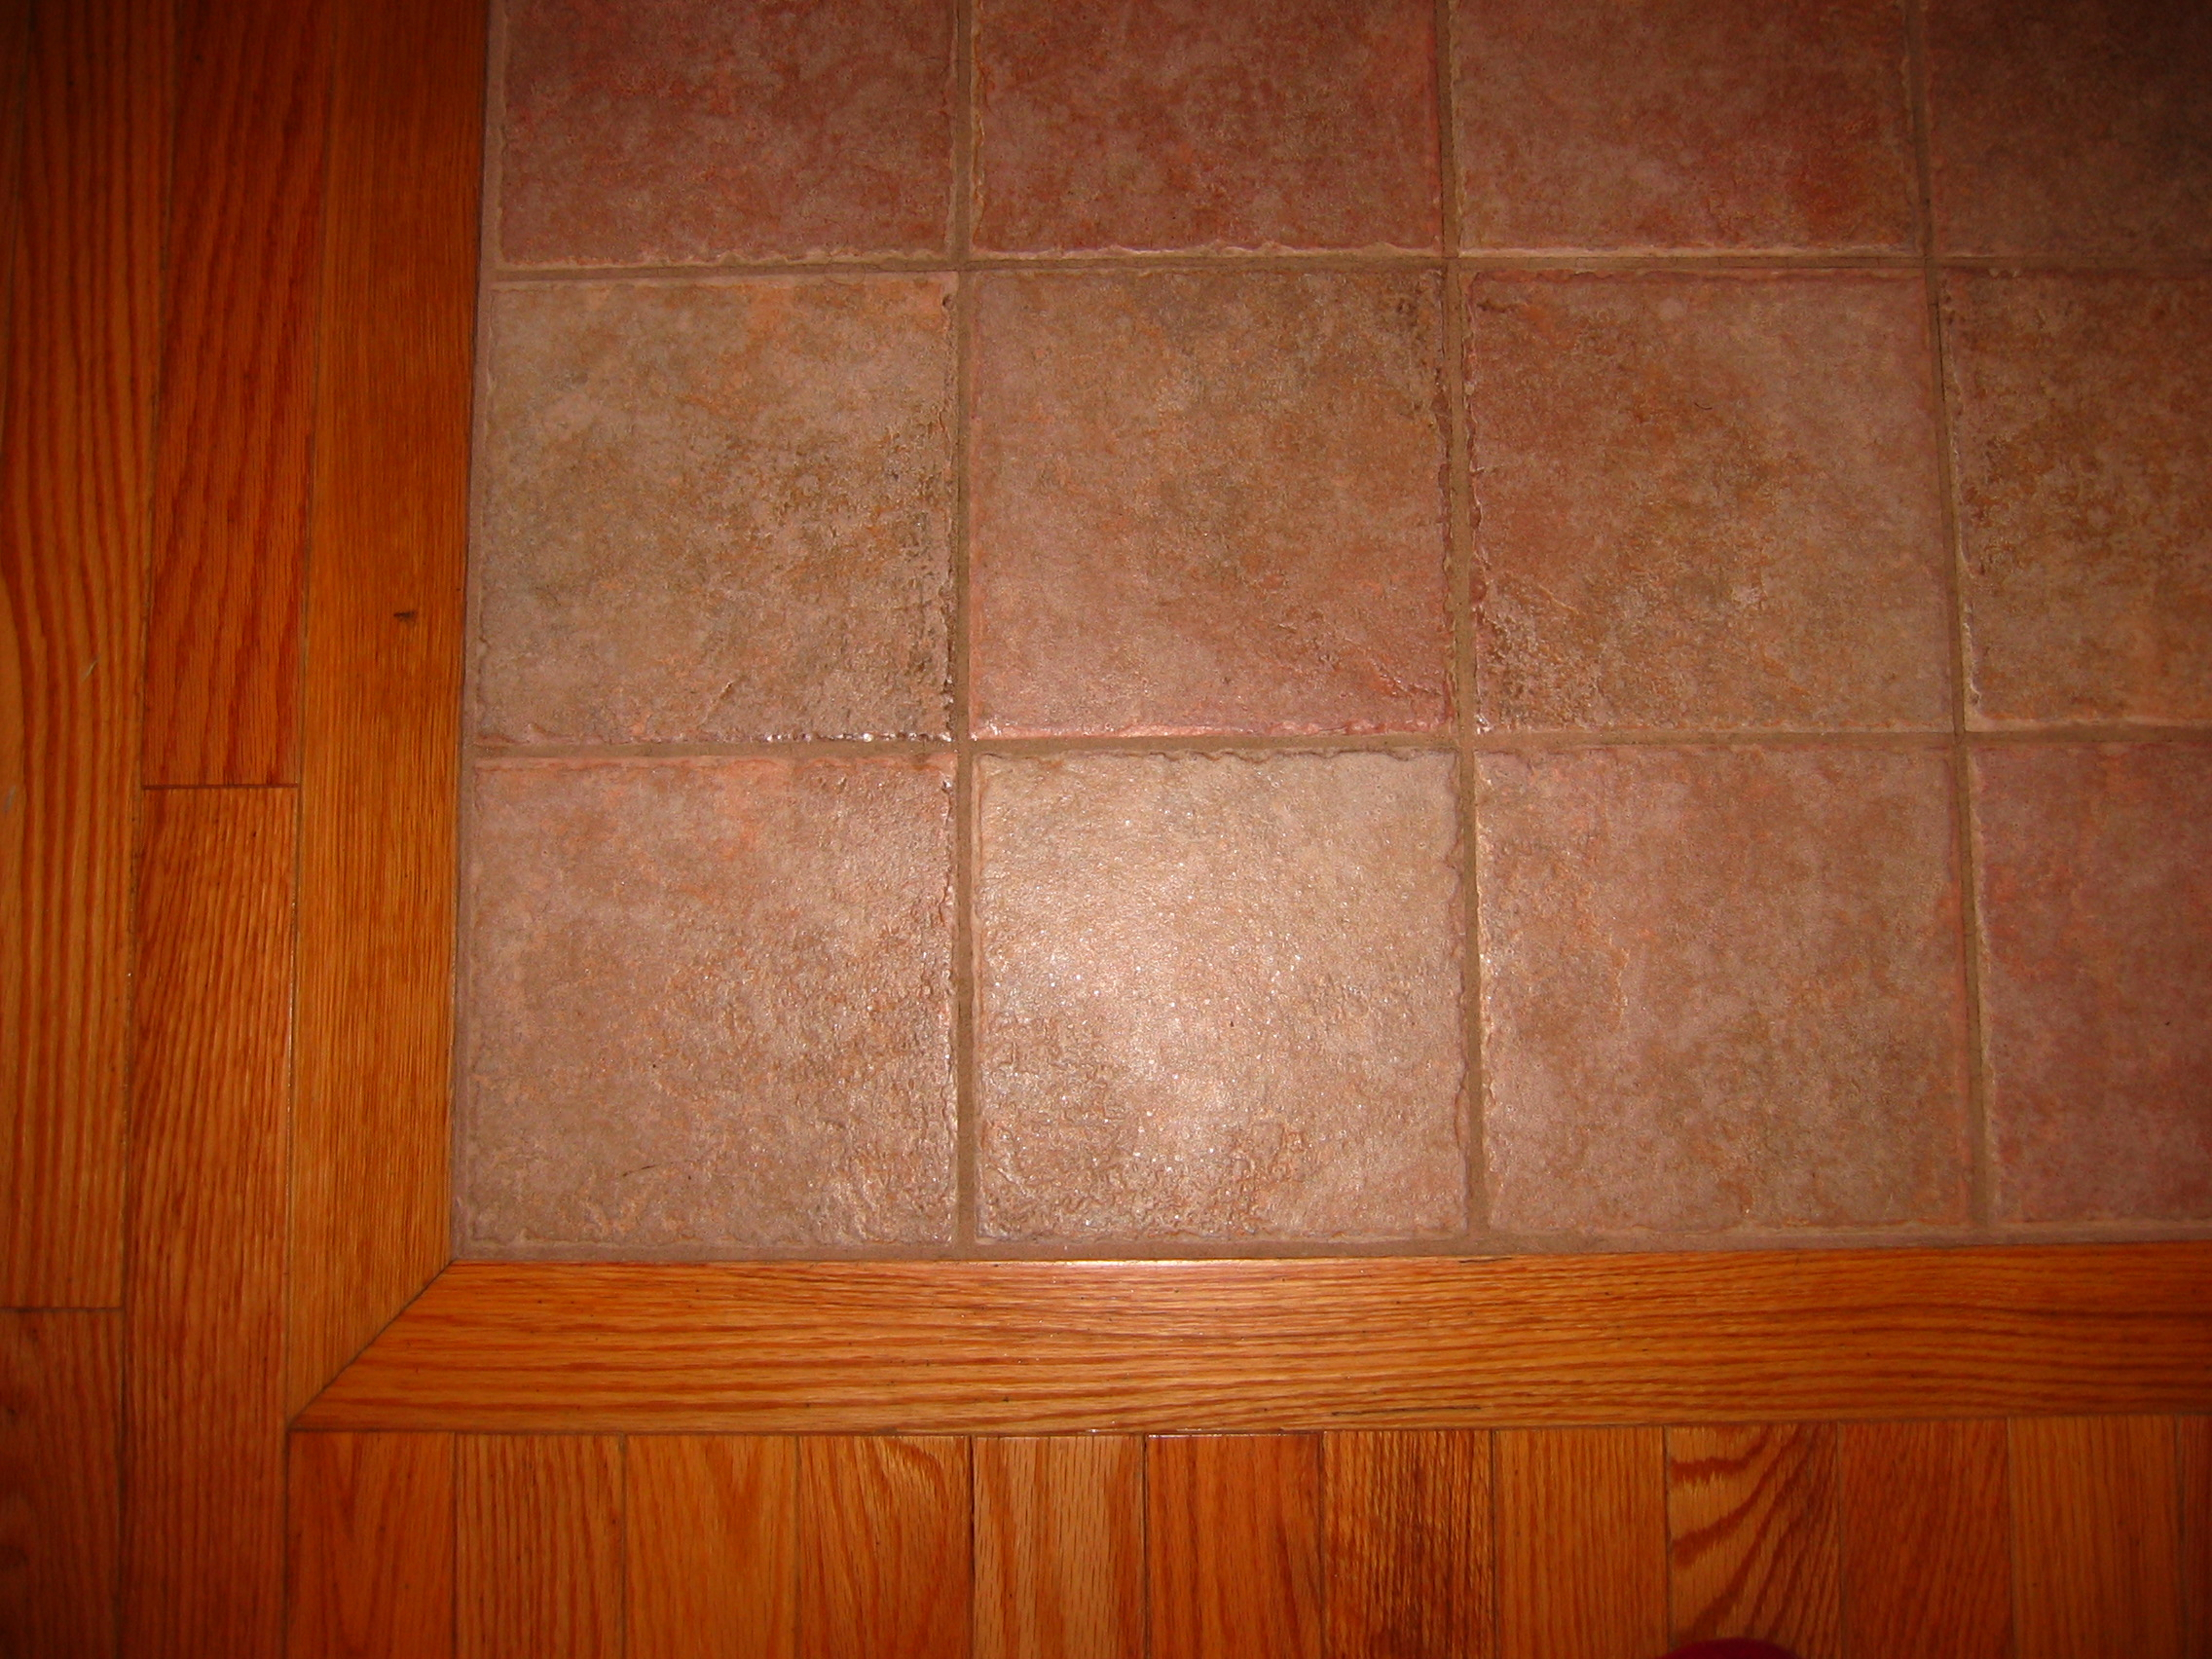 Tile over floor tiles